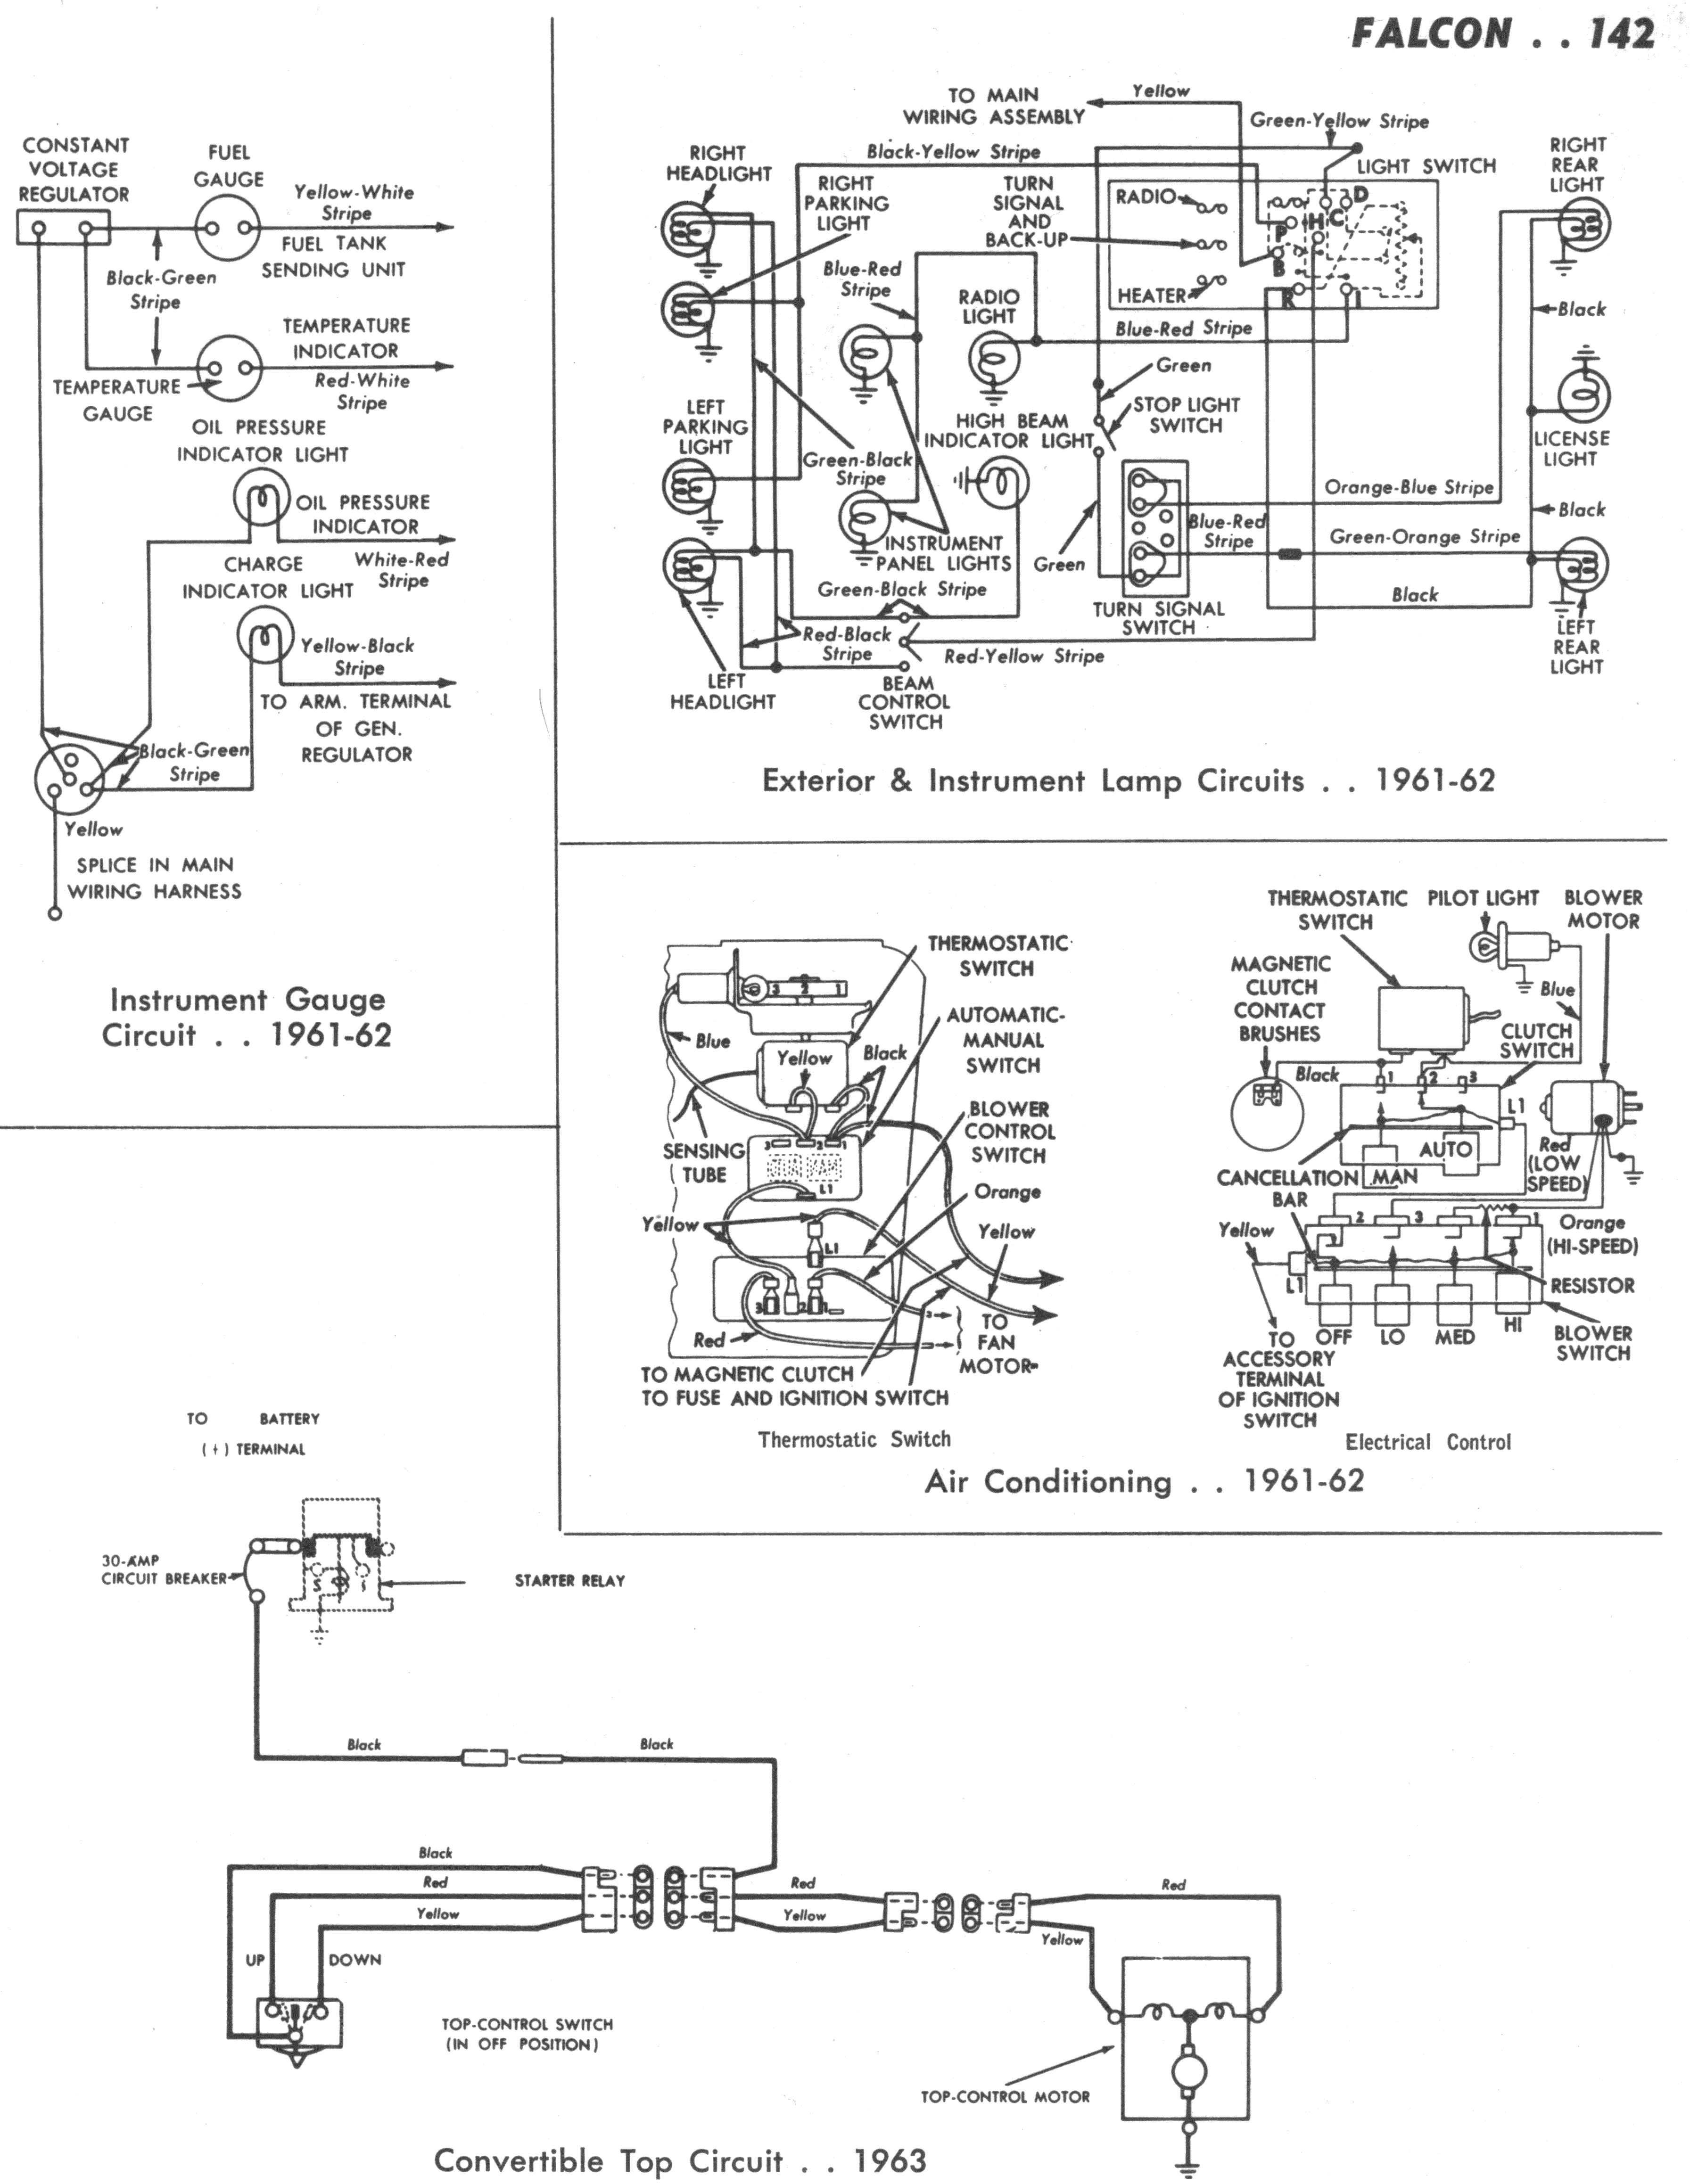 1964 falcon wiring diagram   26 wiring diagram images